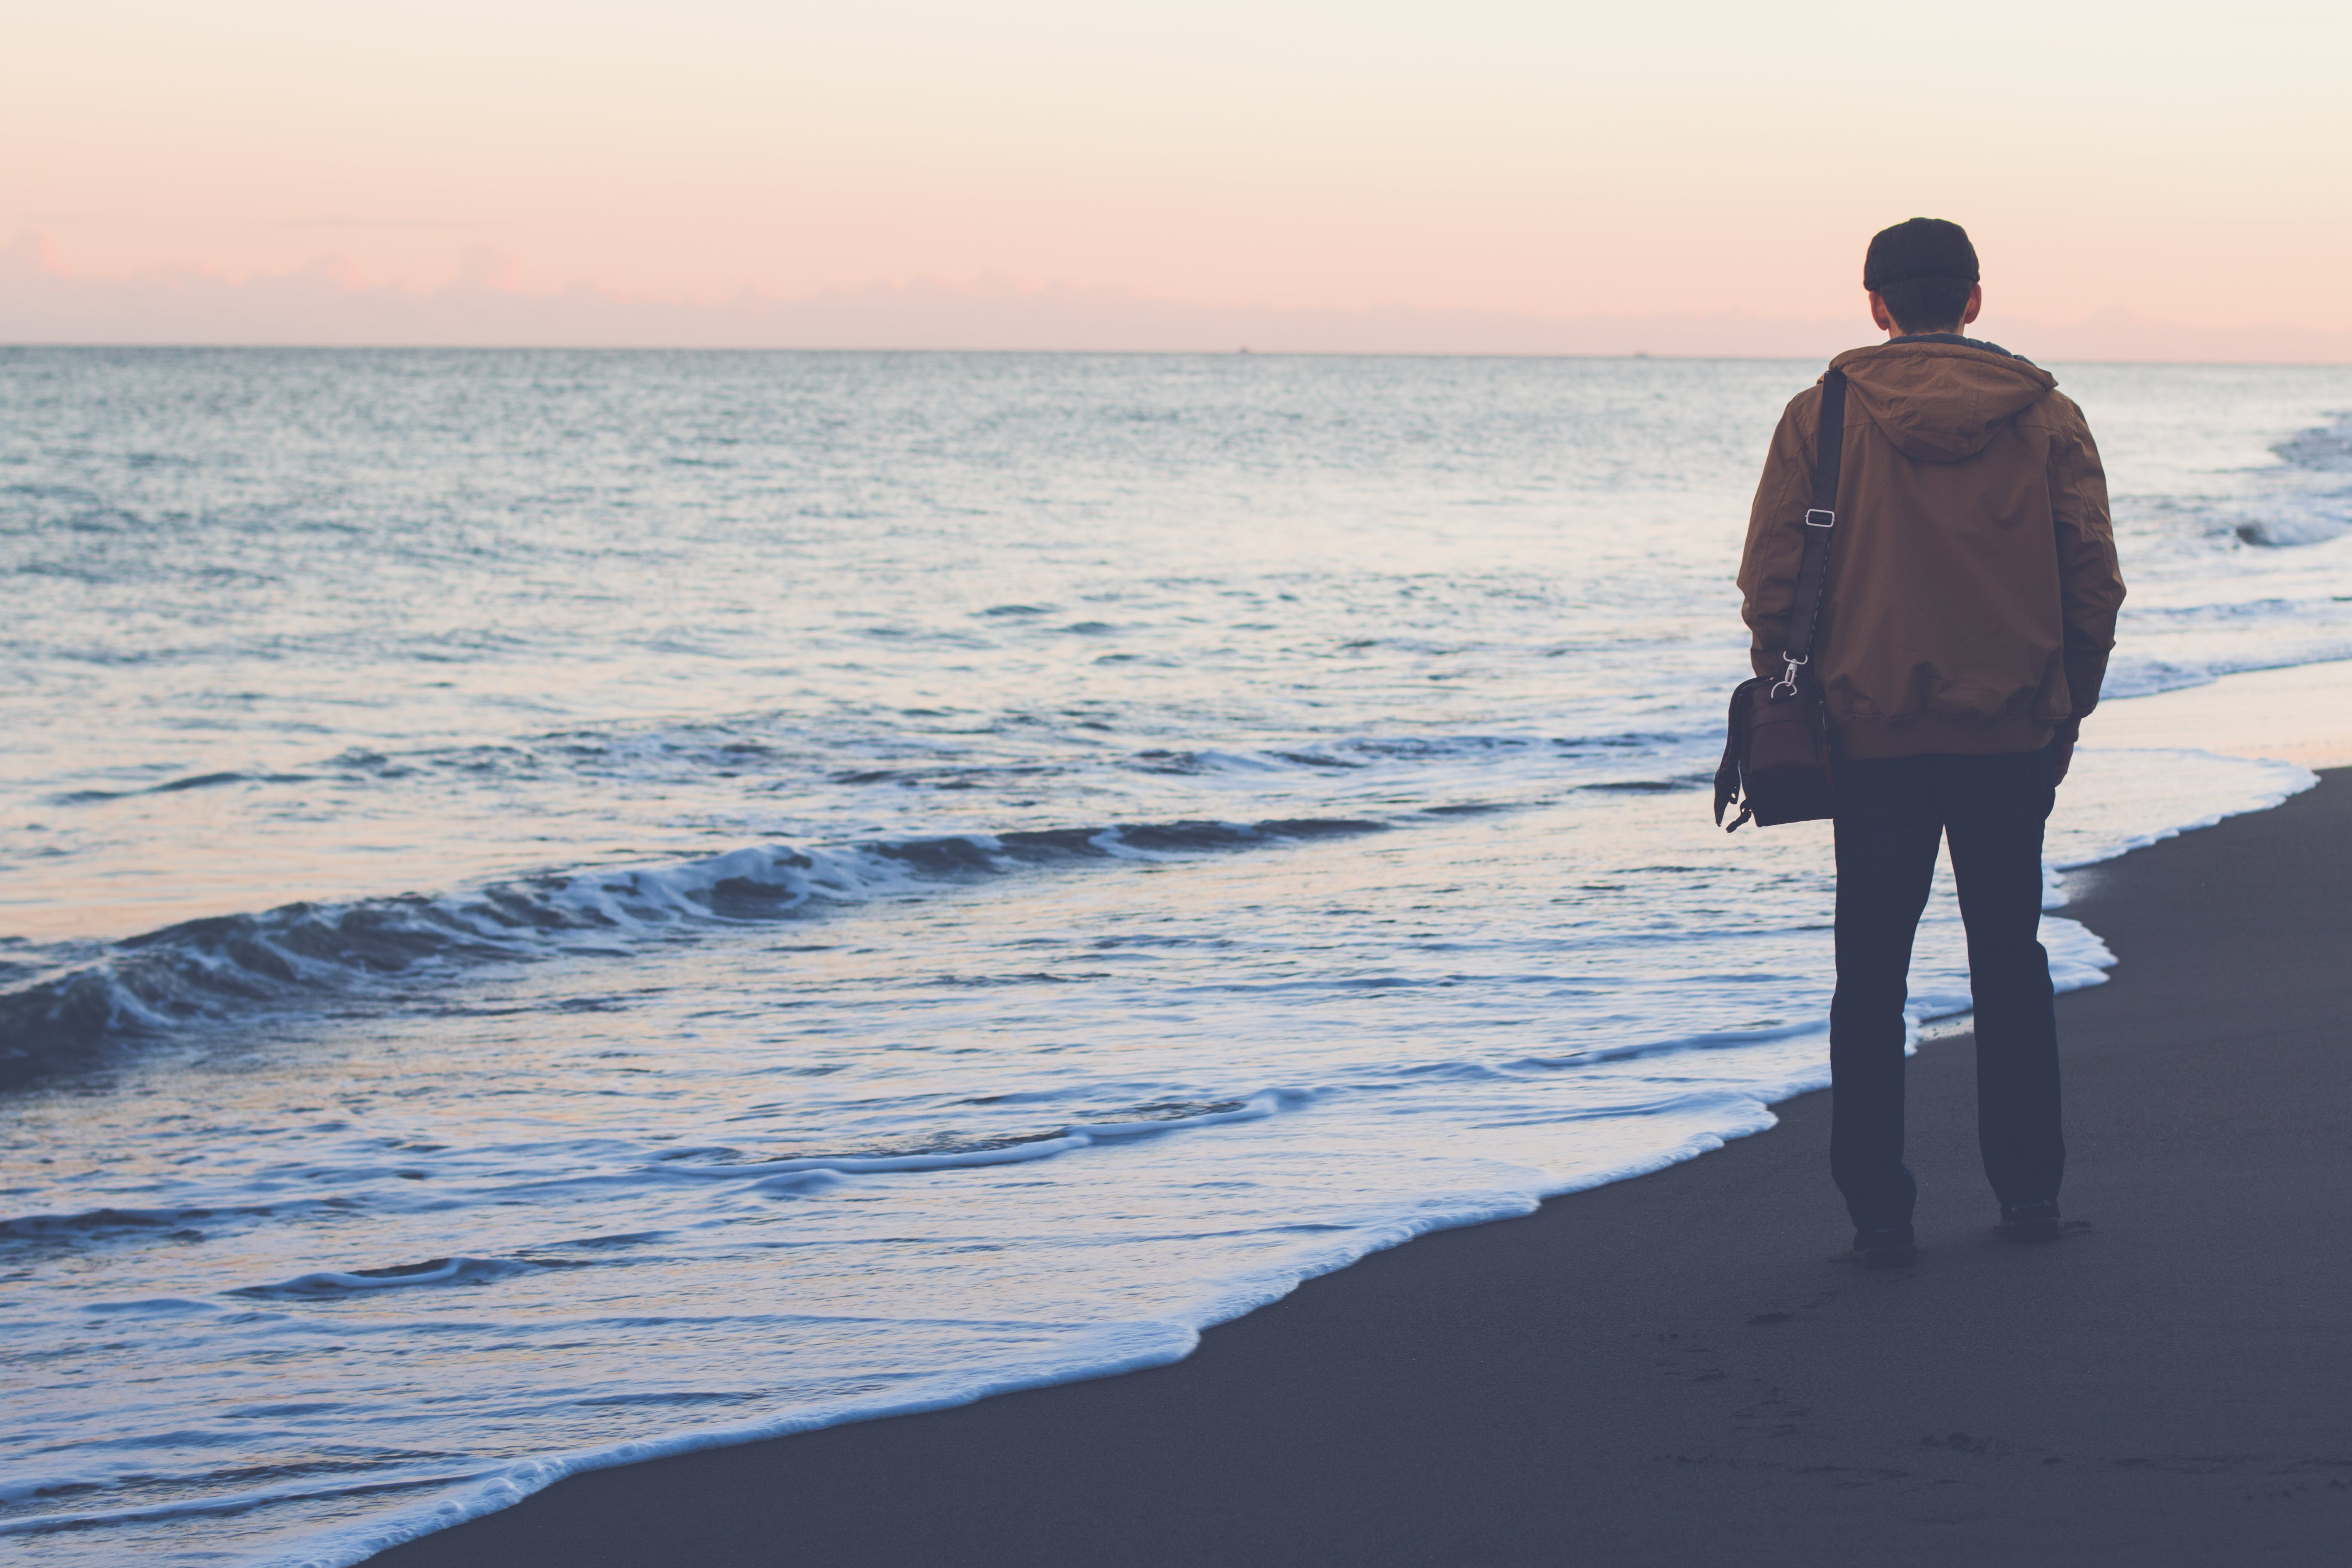 Man Standing on Seashore While Carrying Bag